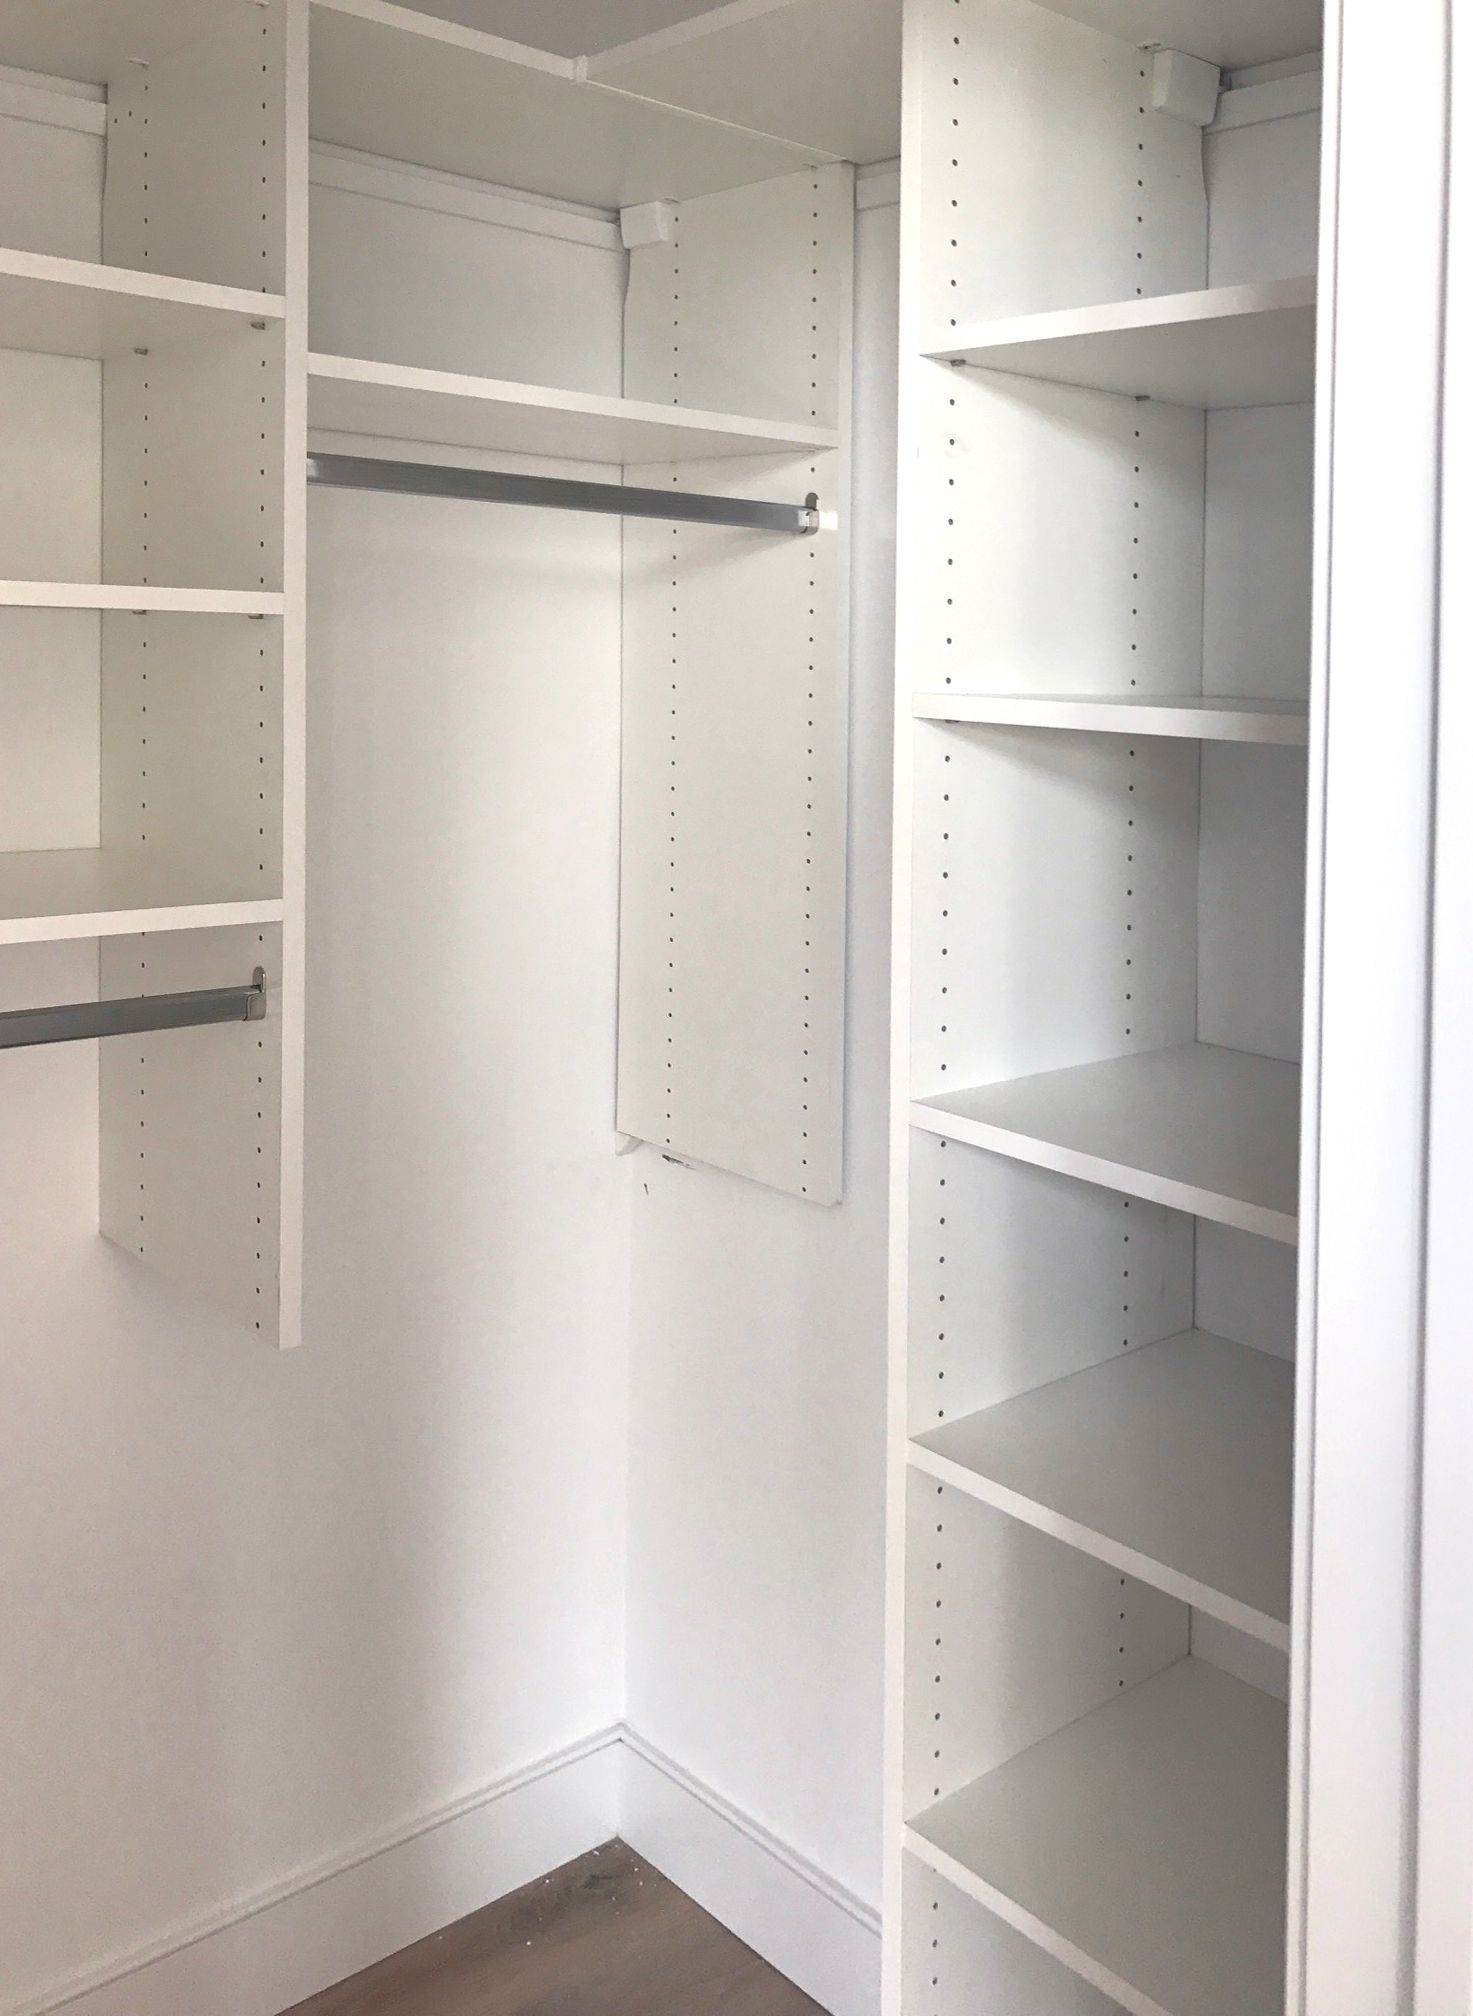 Lots of shelves and hanging in a small corner closet.